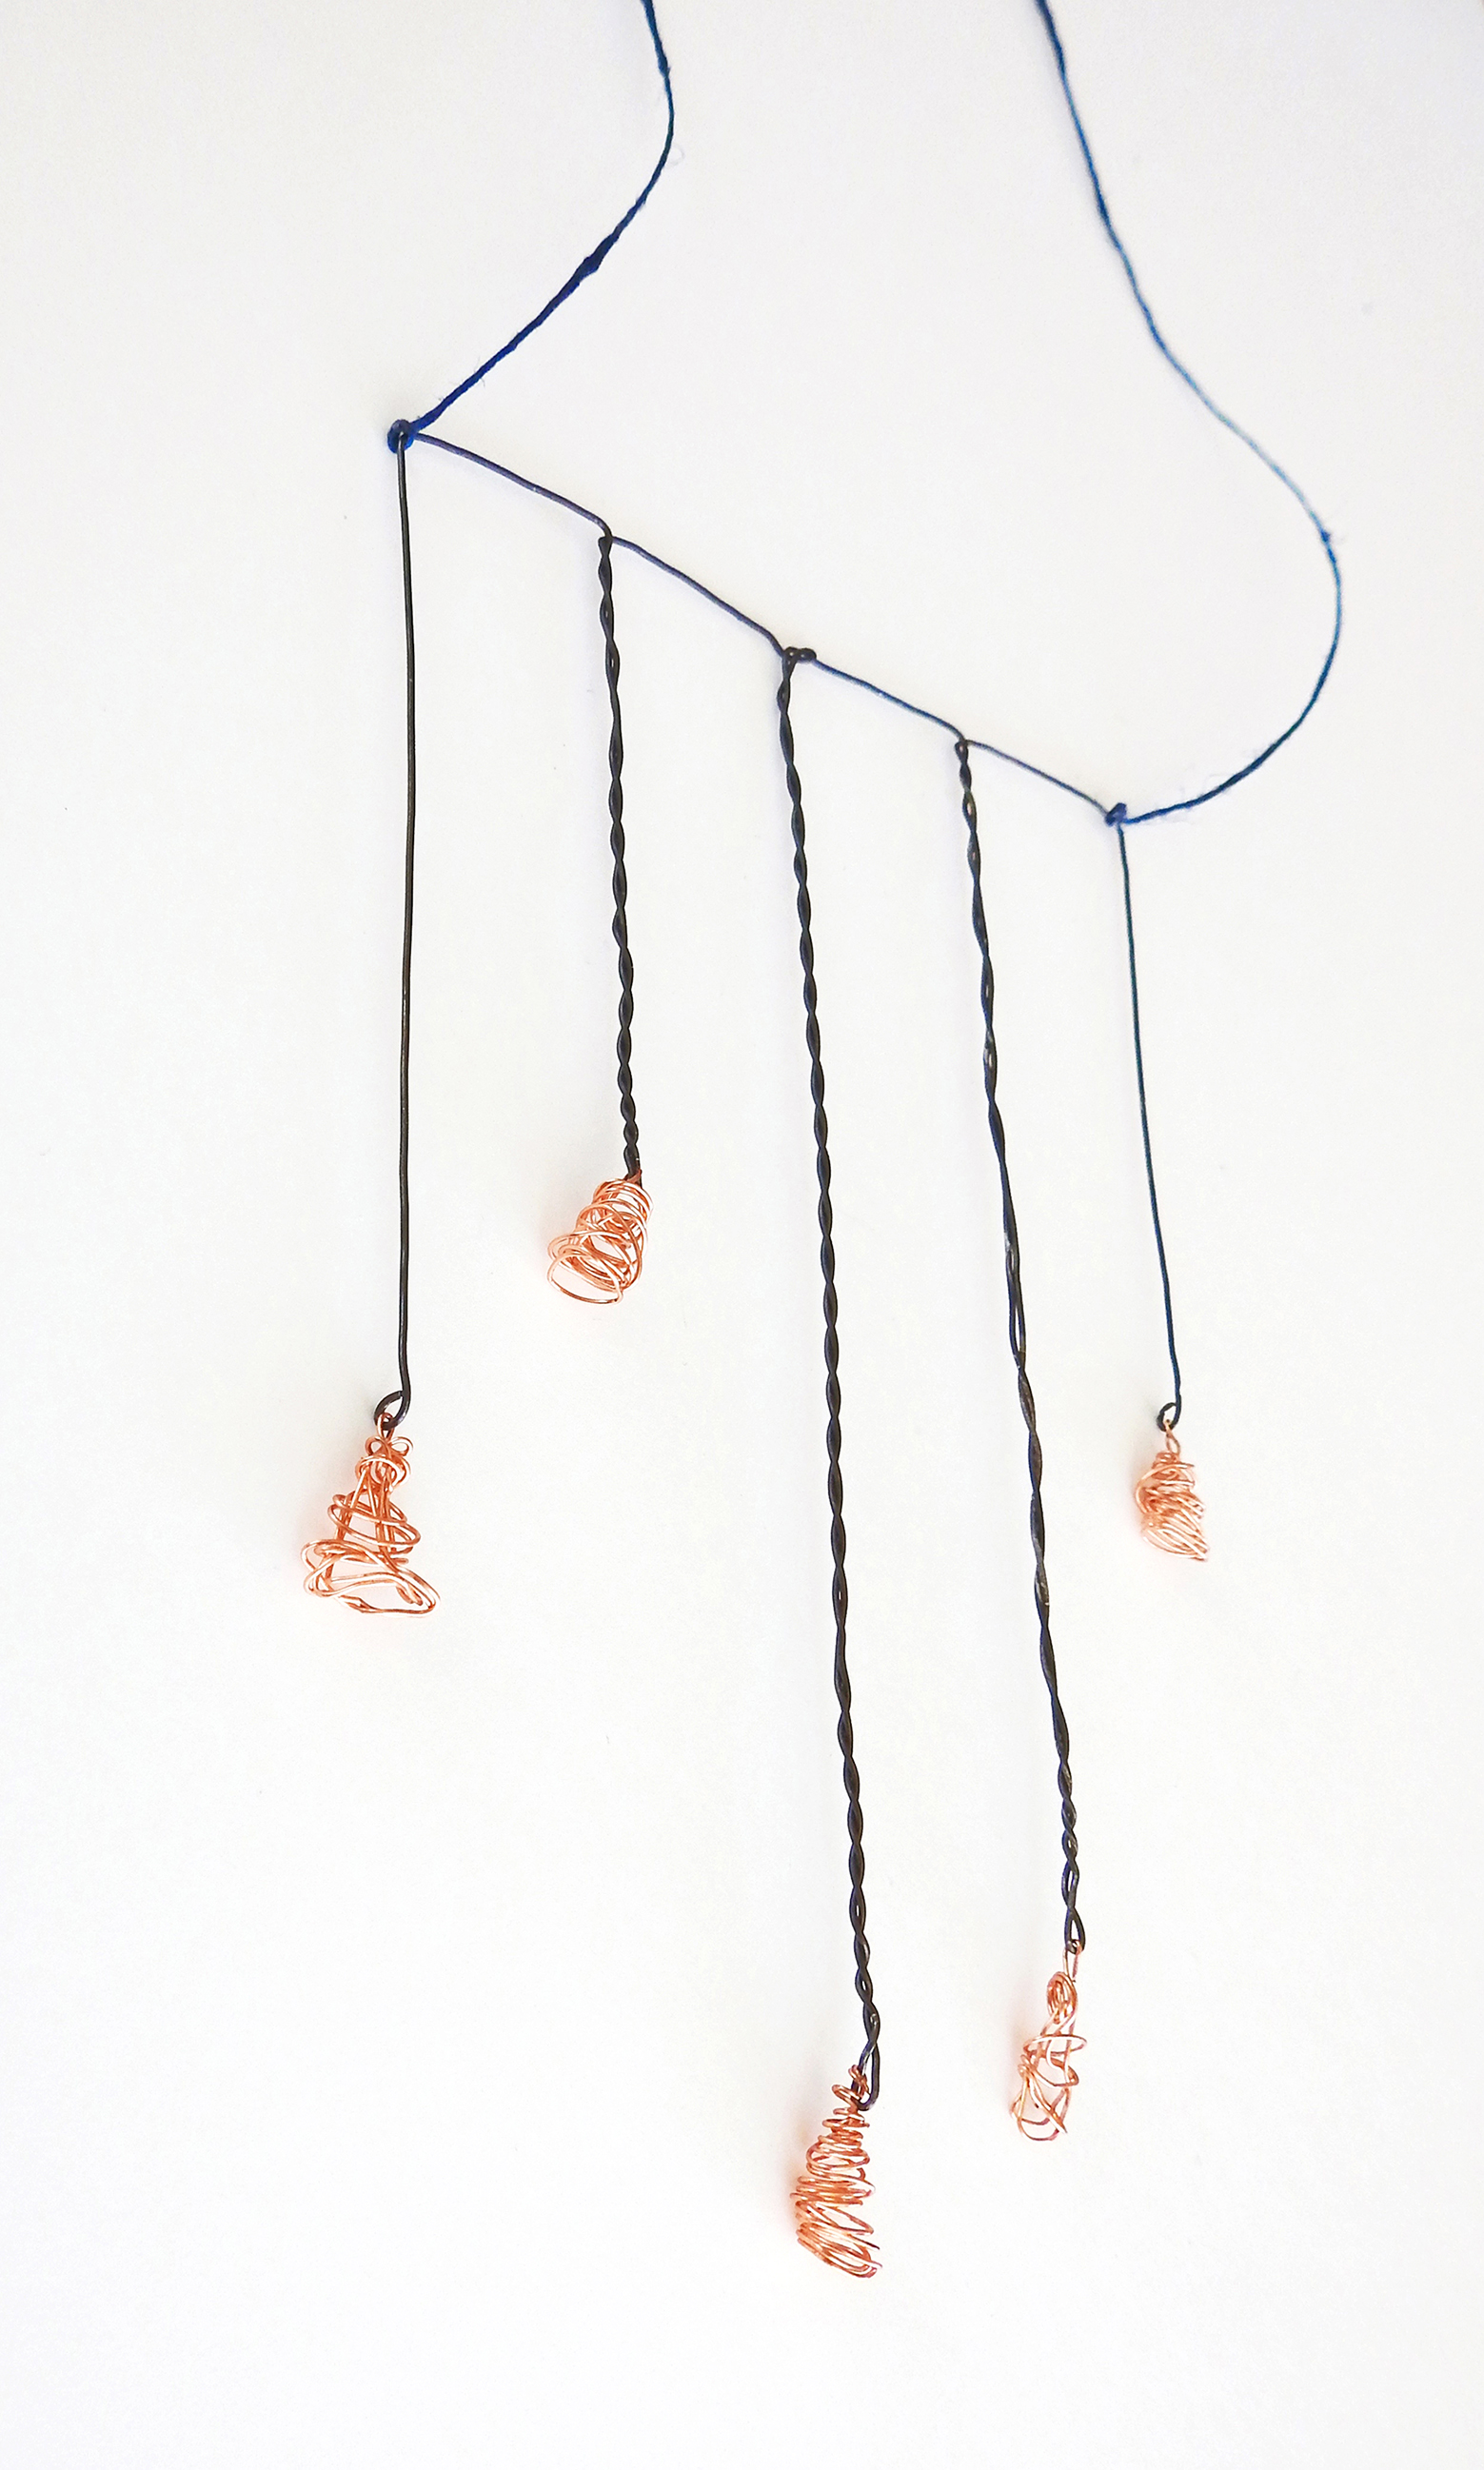 'Wired' Necklace (2015): Paper Thread, Steel & Copper Wires